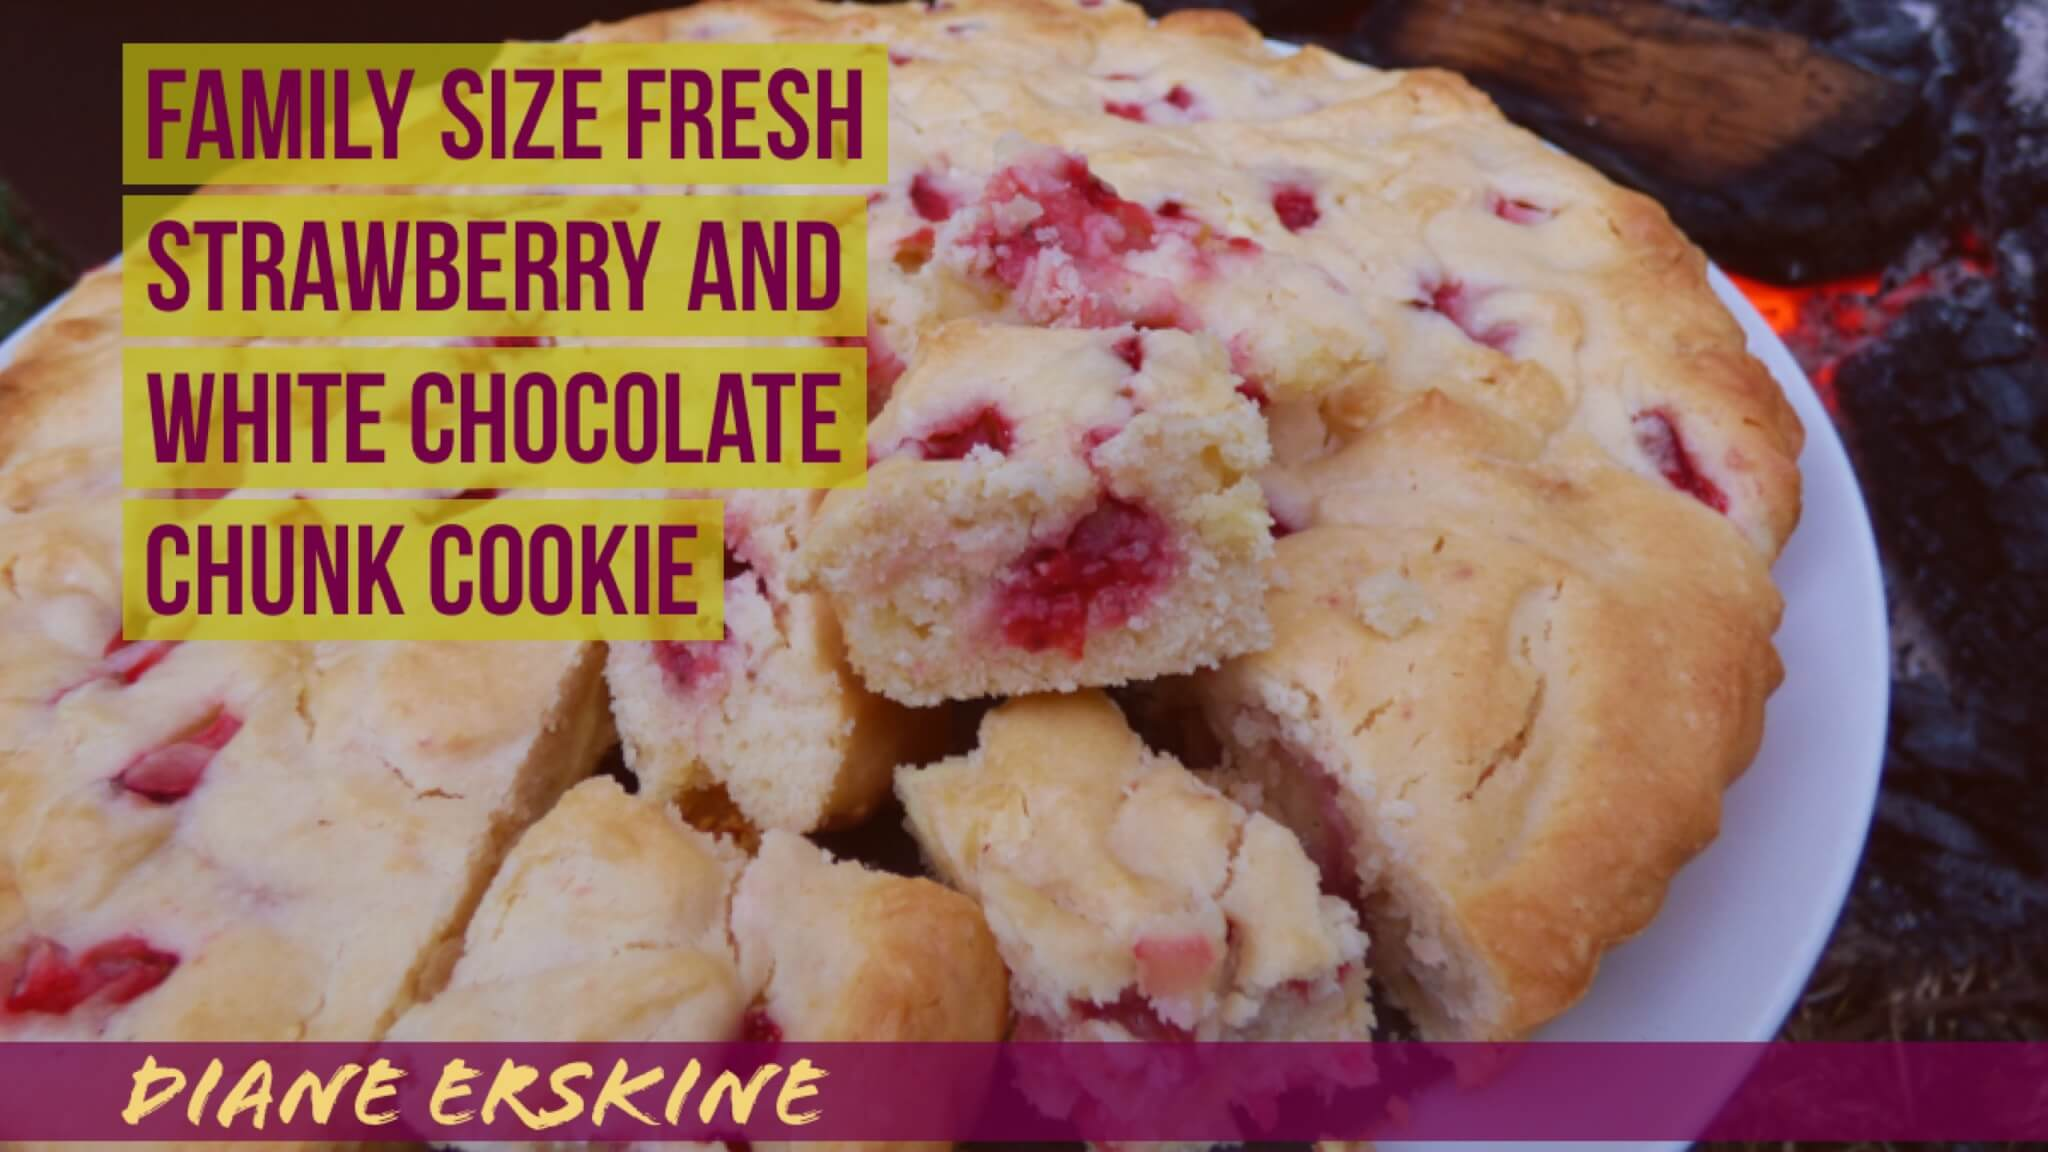 Family-Size Strawberry and Chocolate Chunk Cookie | Diane Erskine